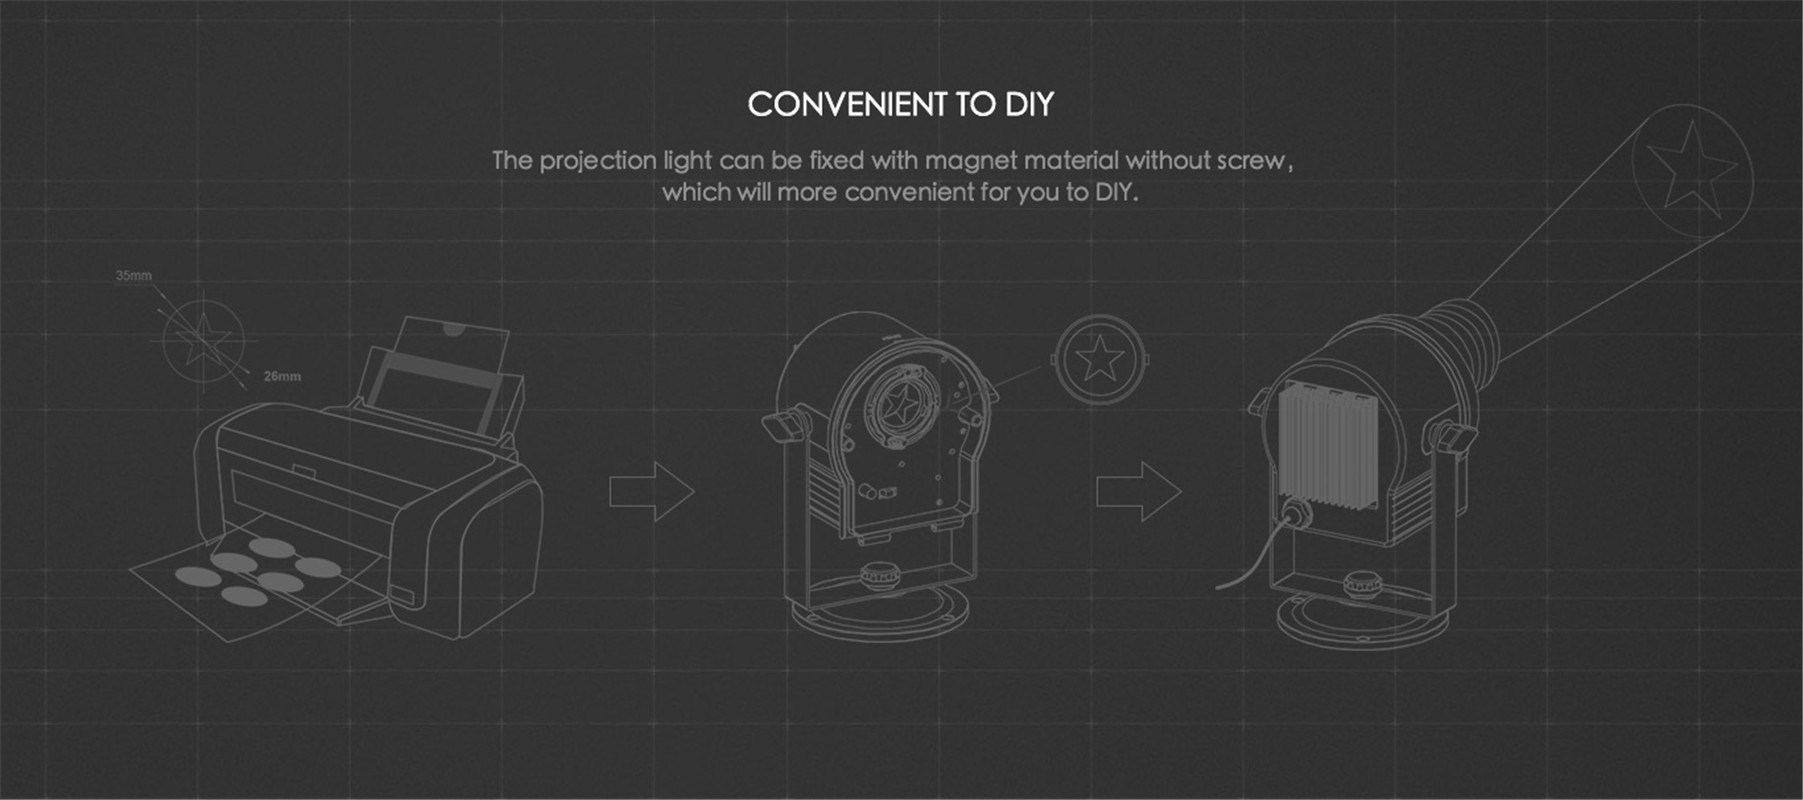 images/wholesale-electronics-2019/blinblin-SHOW-1-LED-Projector-Light-with-6-Pattern-Slide-BLACK-plusbuyer_91.jpg